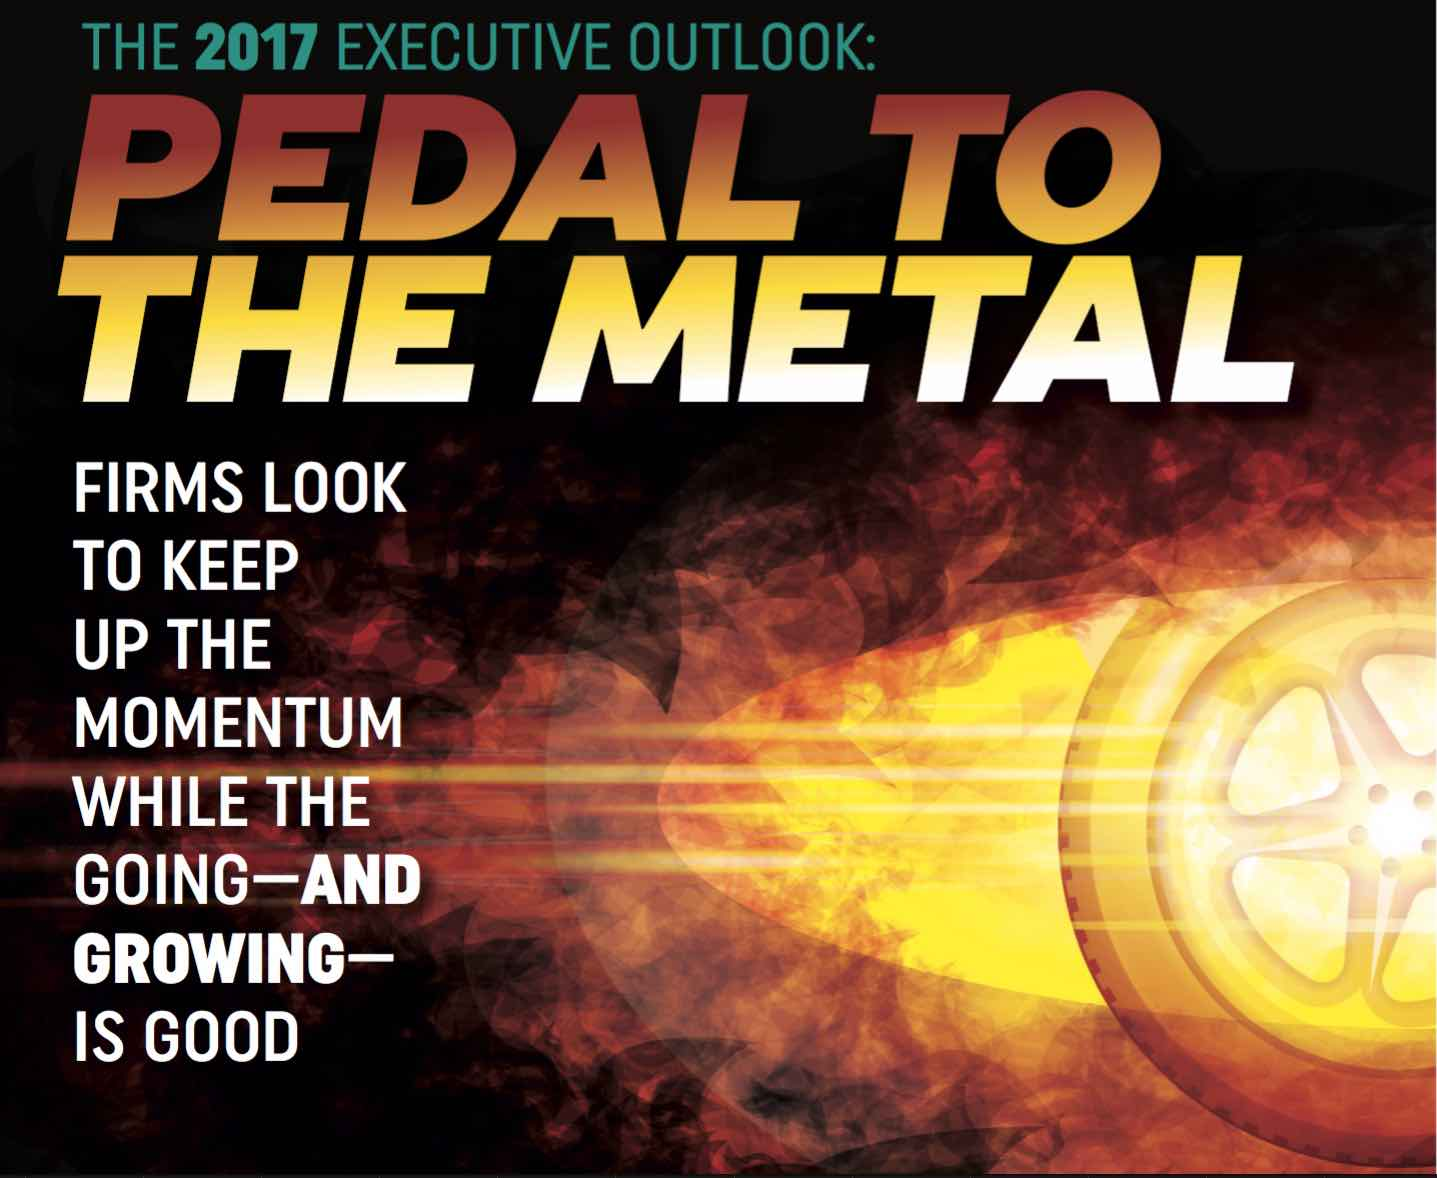 The 2017 Executive Outlook: Pedal to the Metal